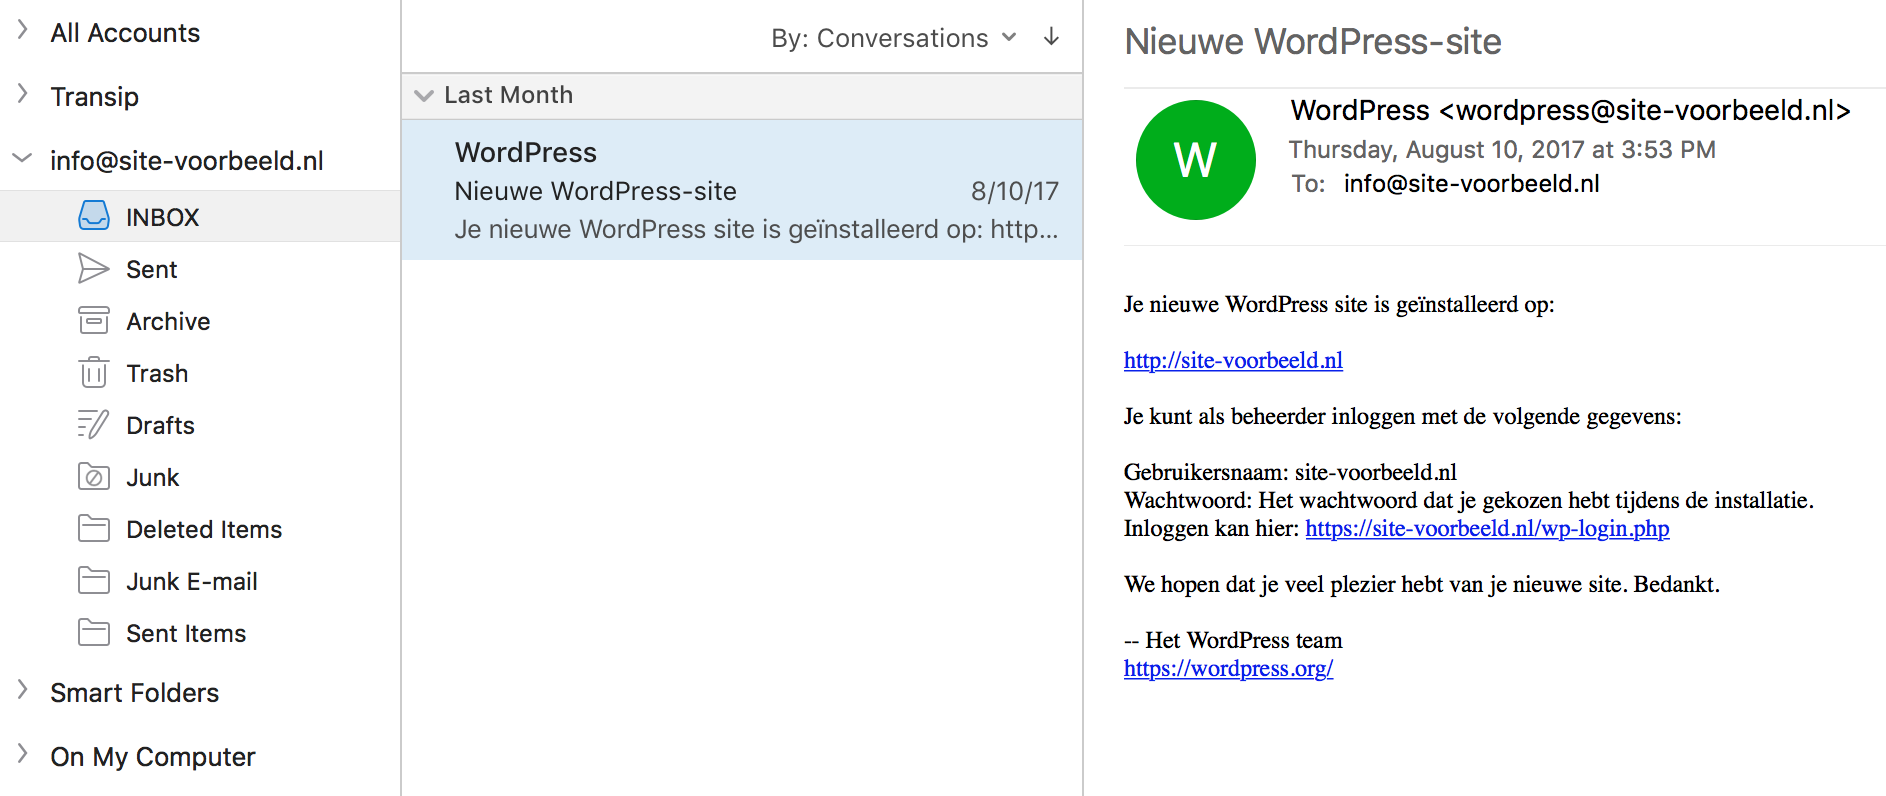 Jouw e-mailadres is nu gereed